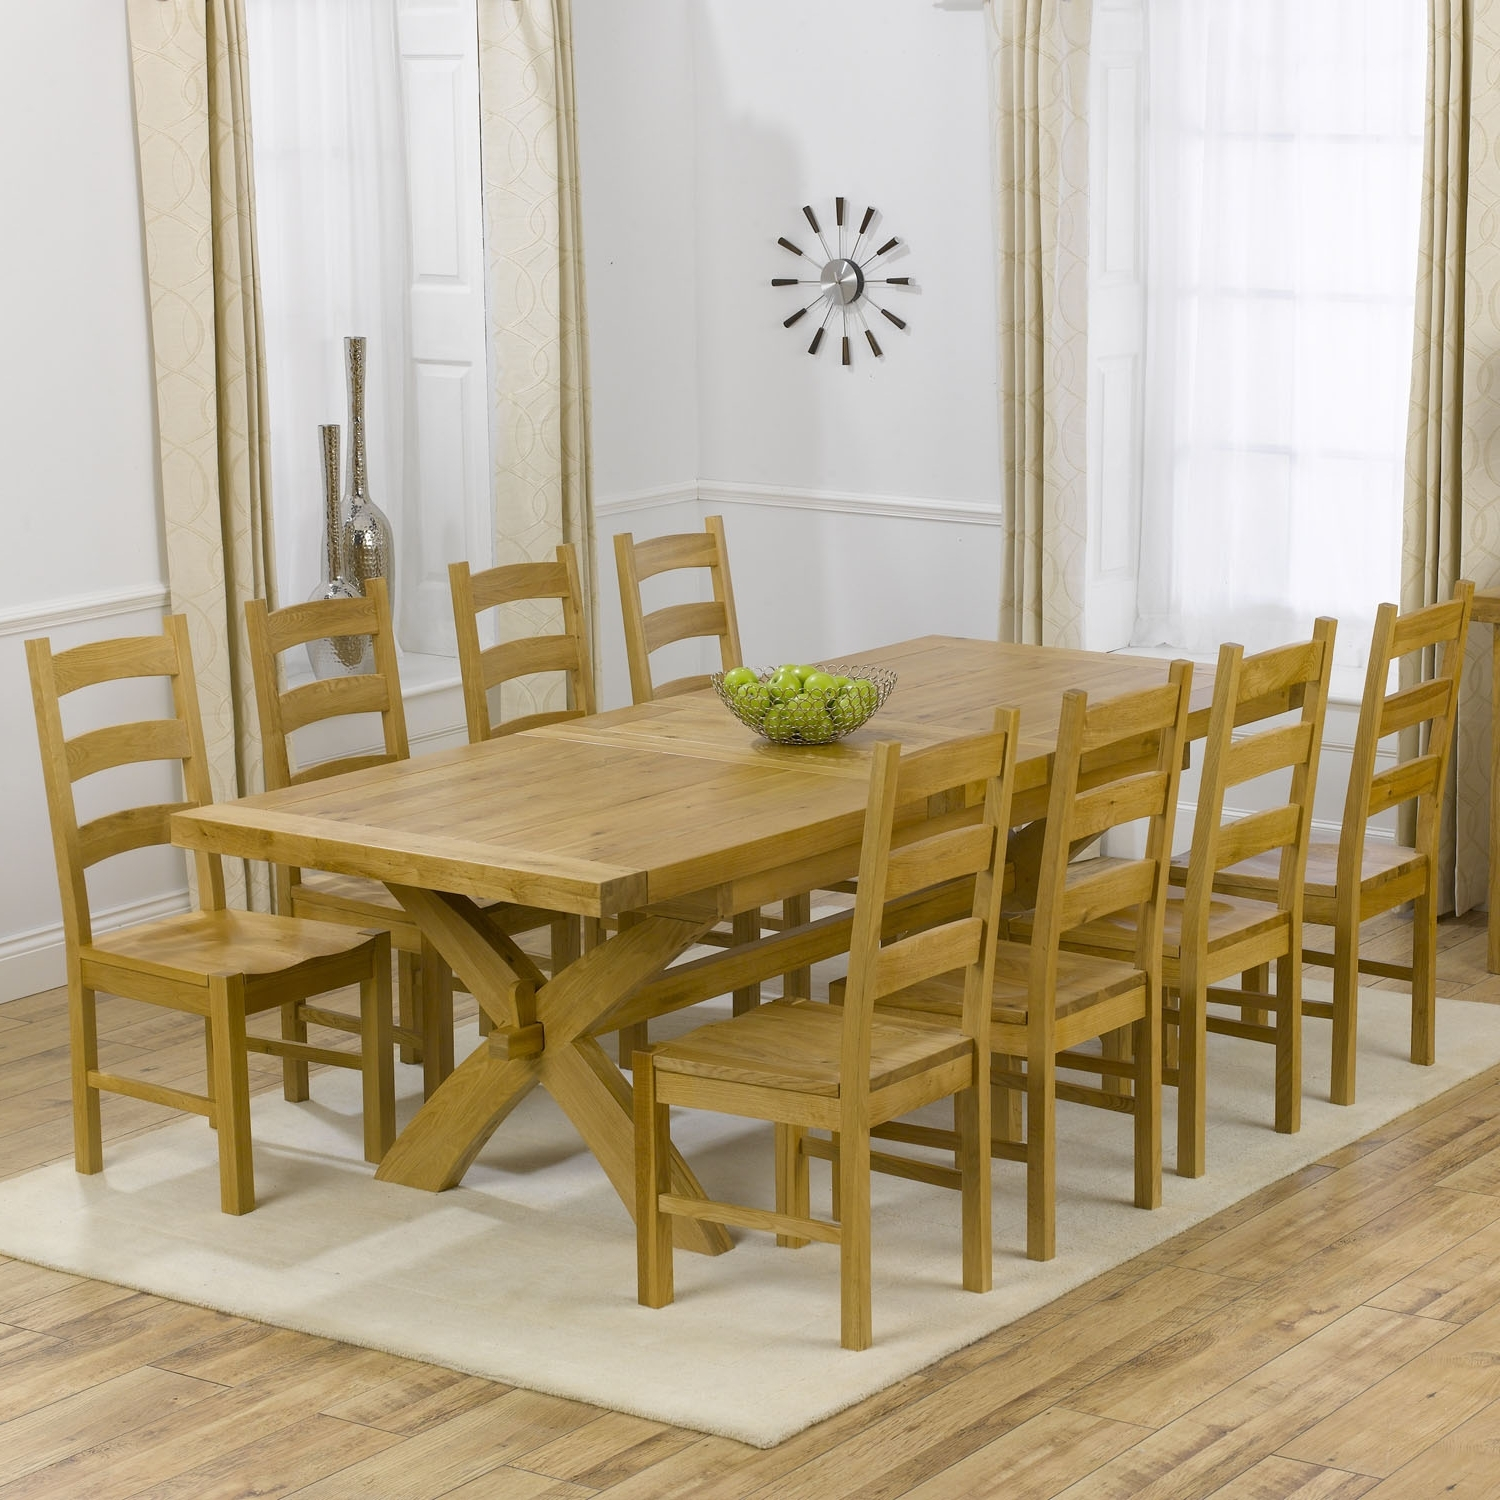 8 Seat Dining Tables for Latest Dining Tables. Marvellous 8 Seater Dining Table Set: 8-Seater-Dining